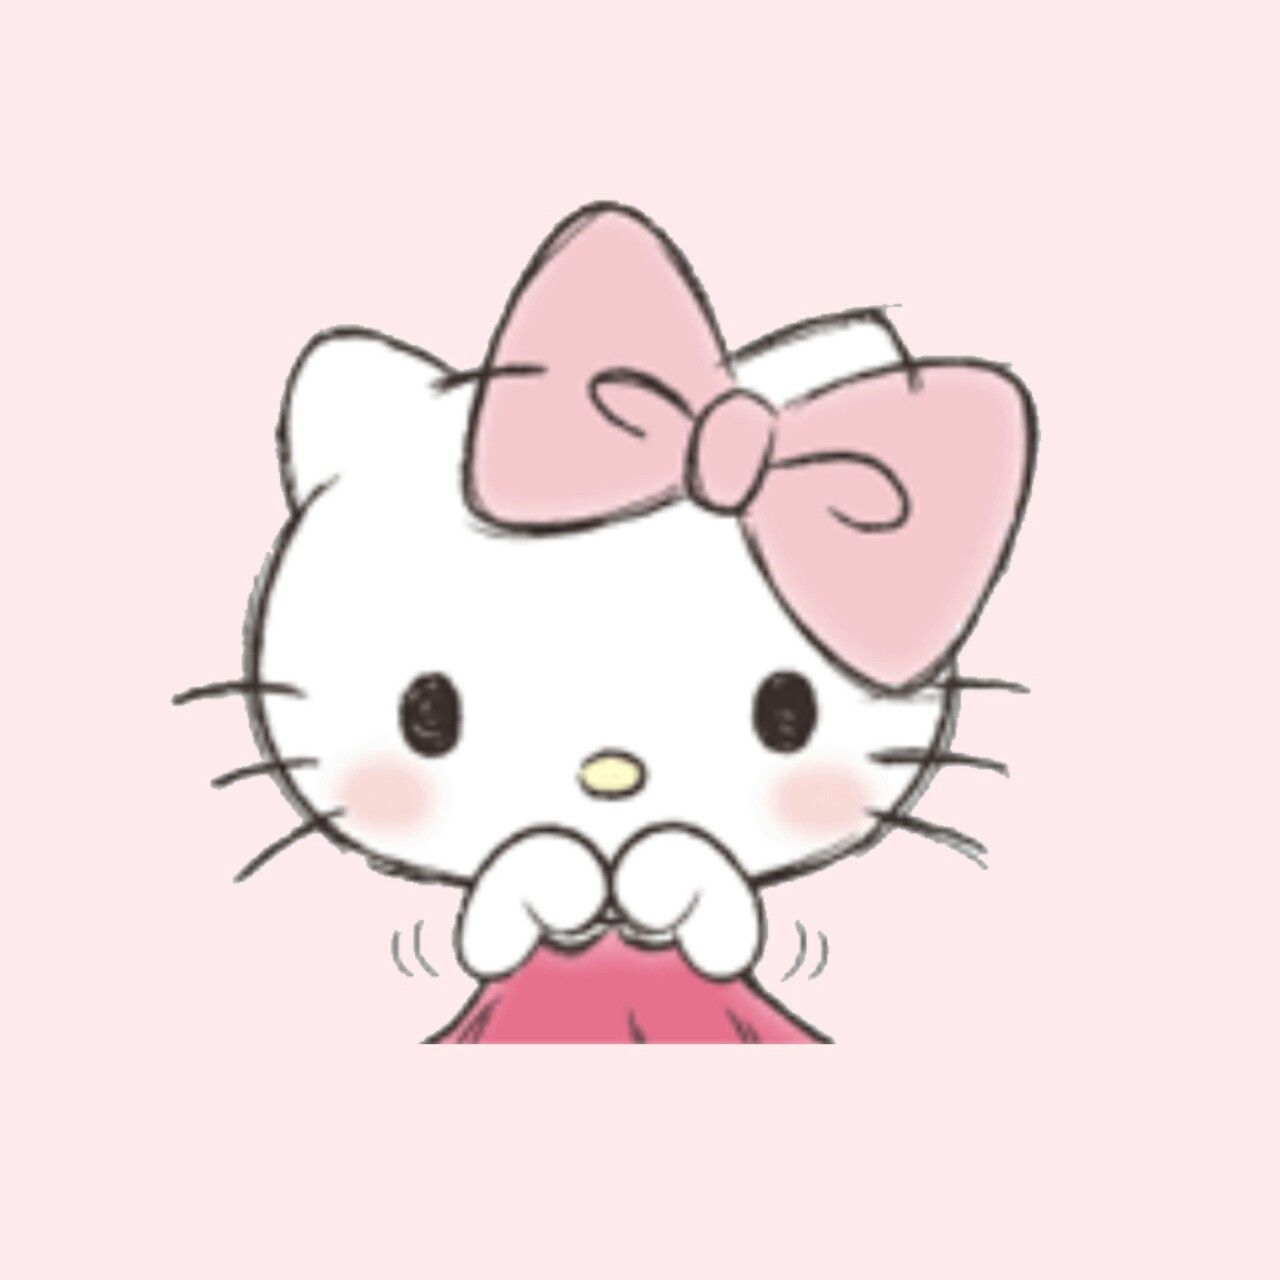 Download Wallpaper Hello Kitty Pastel - d7807367569838f78d1a980dfab57853  Trends_47910.jpg